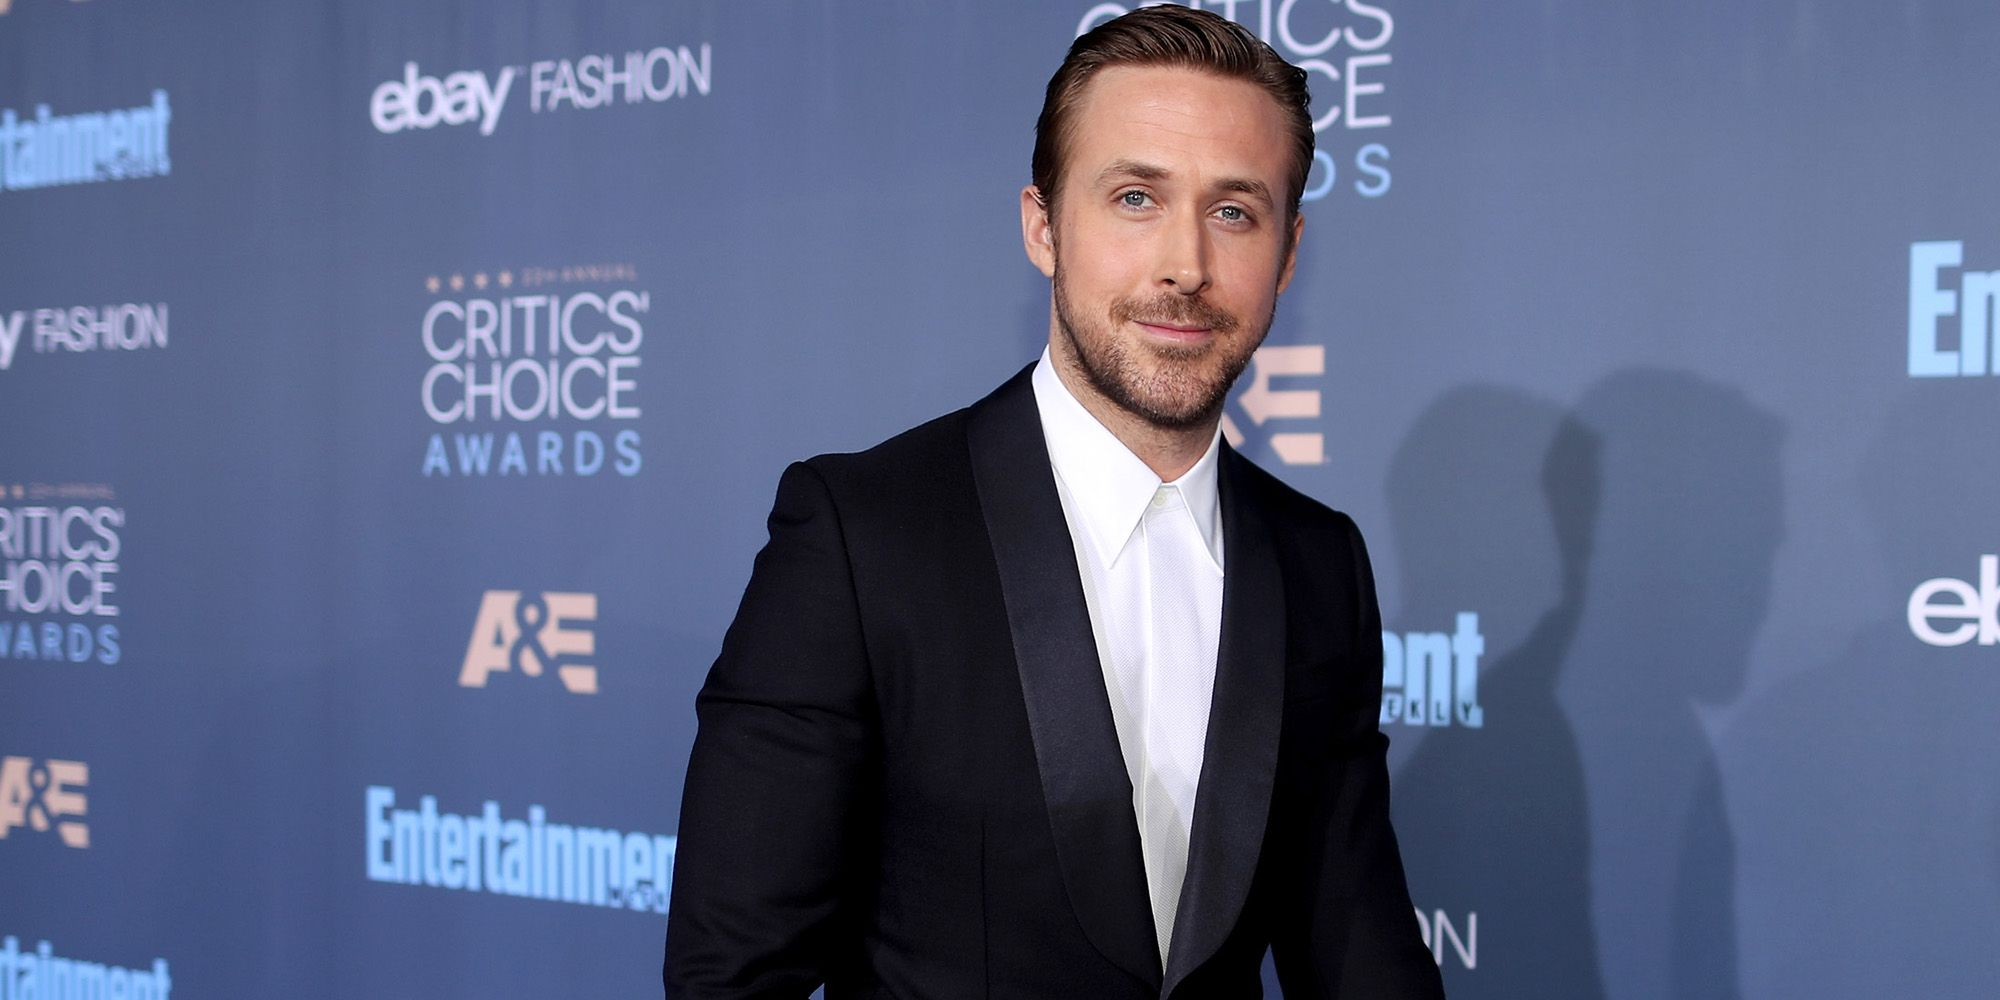 Ryan Gosling Shows His Support for Harvey Weinstein's Accusers